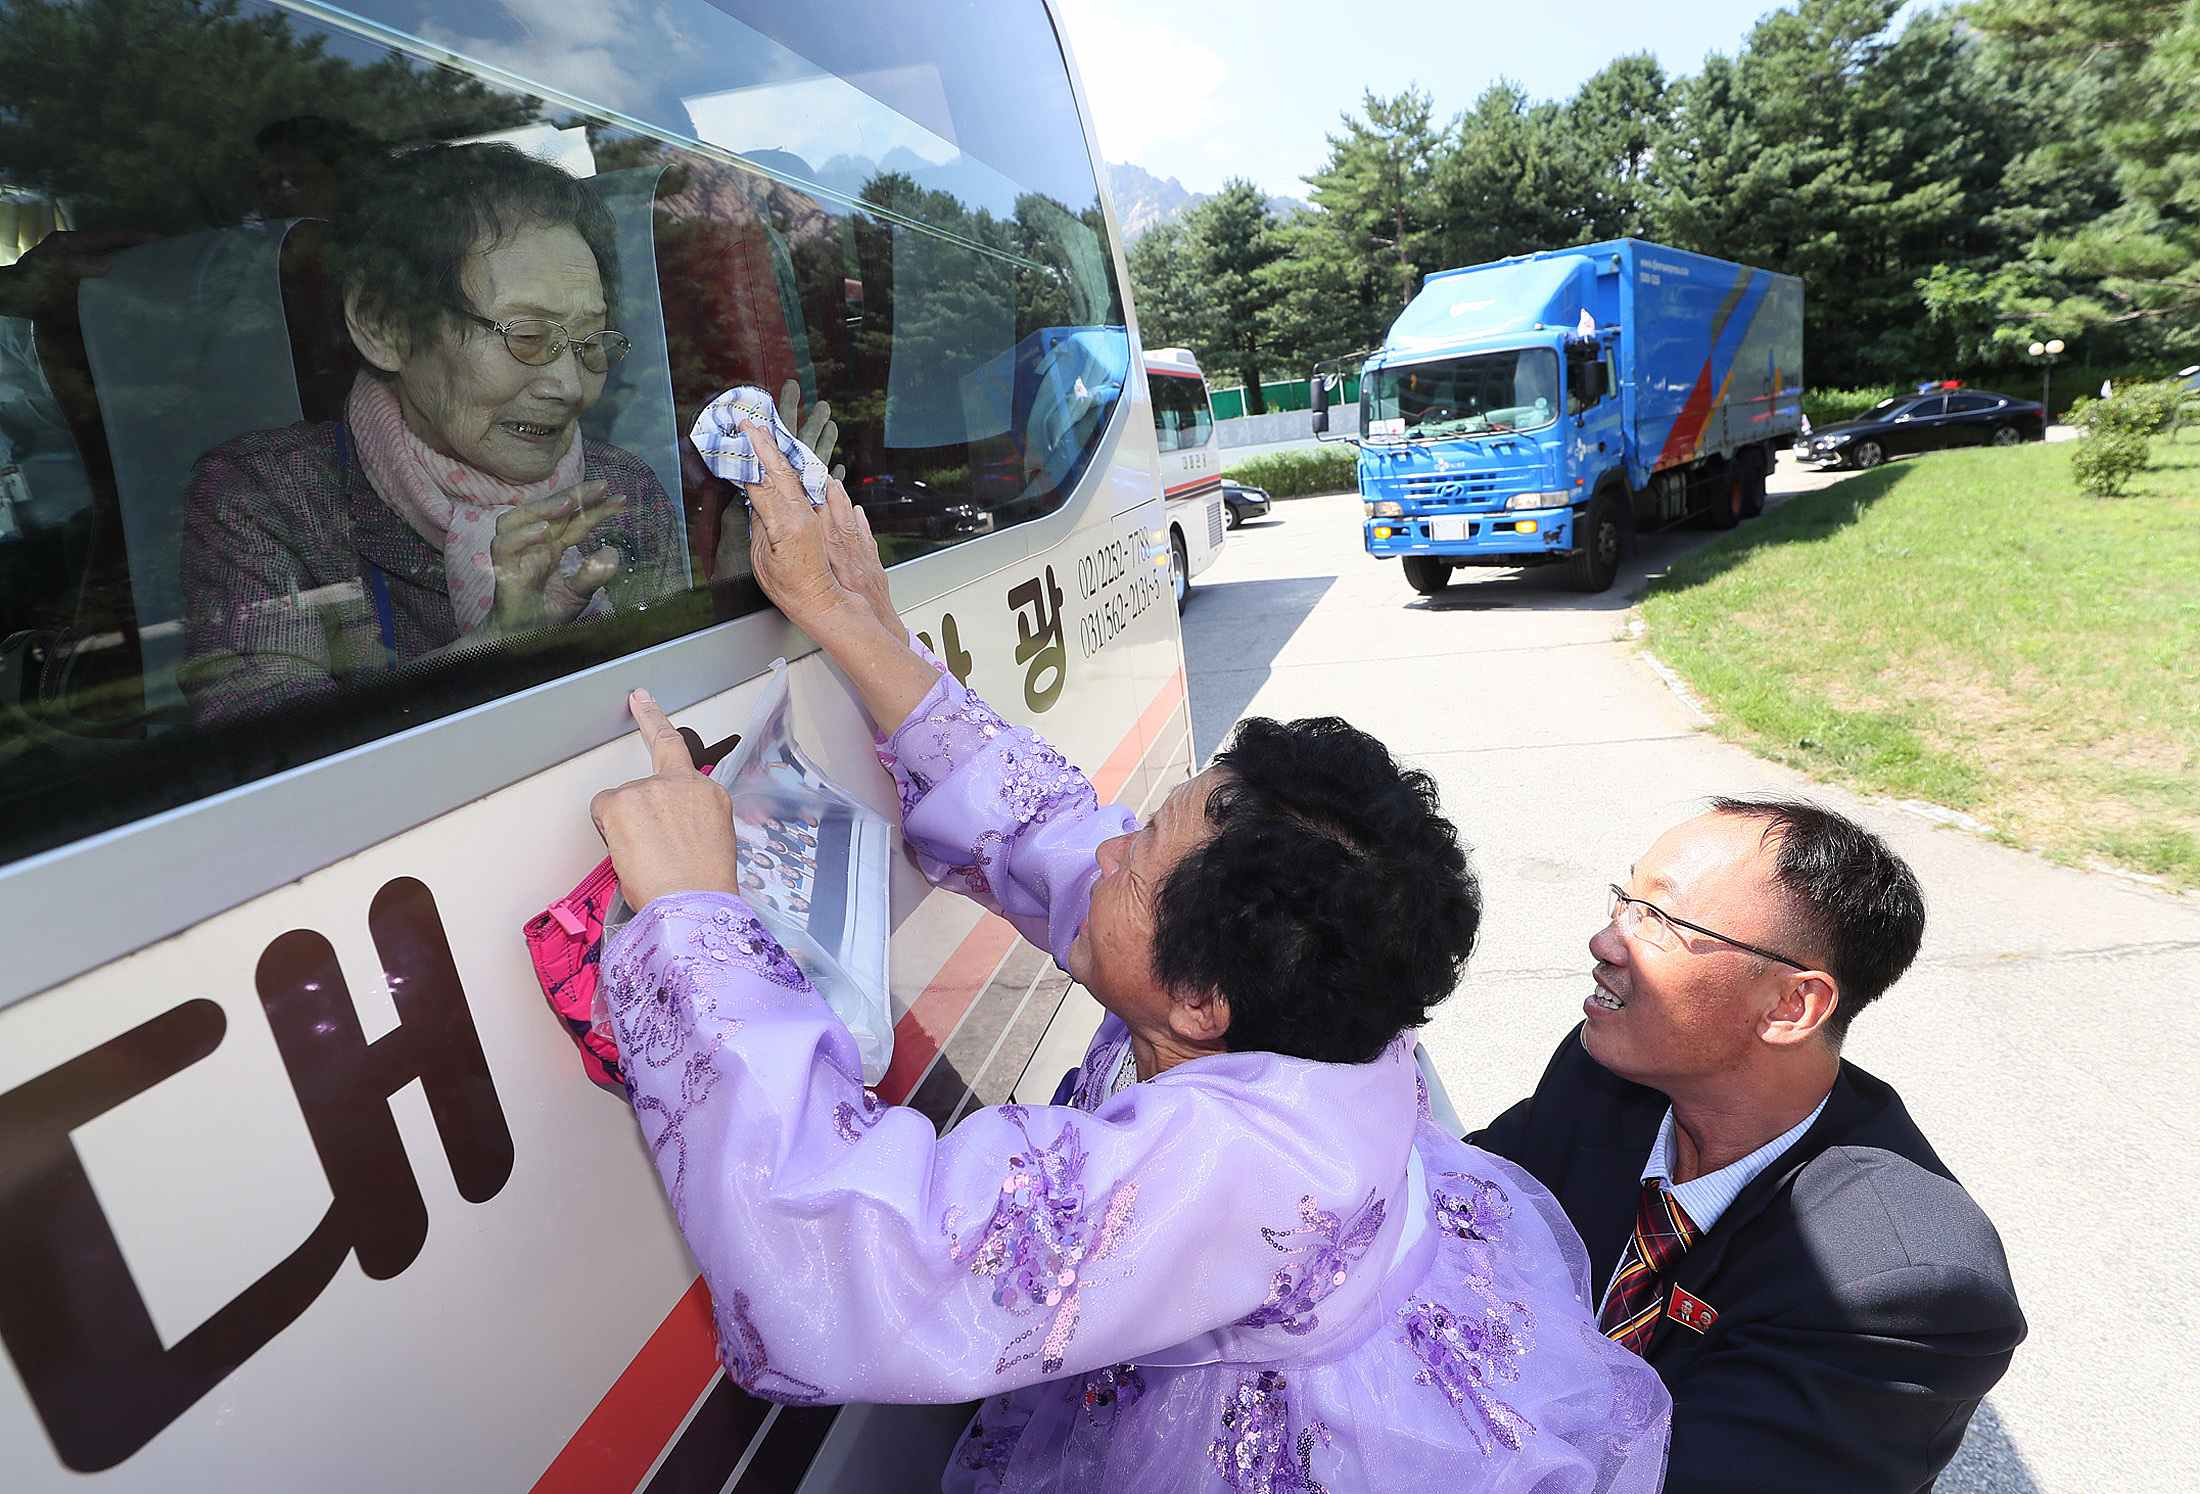 Video: Emotional farewells as North and South Koreans part for last time